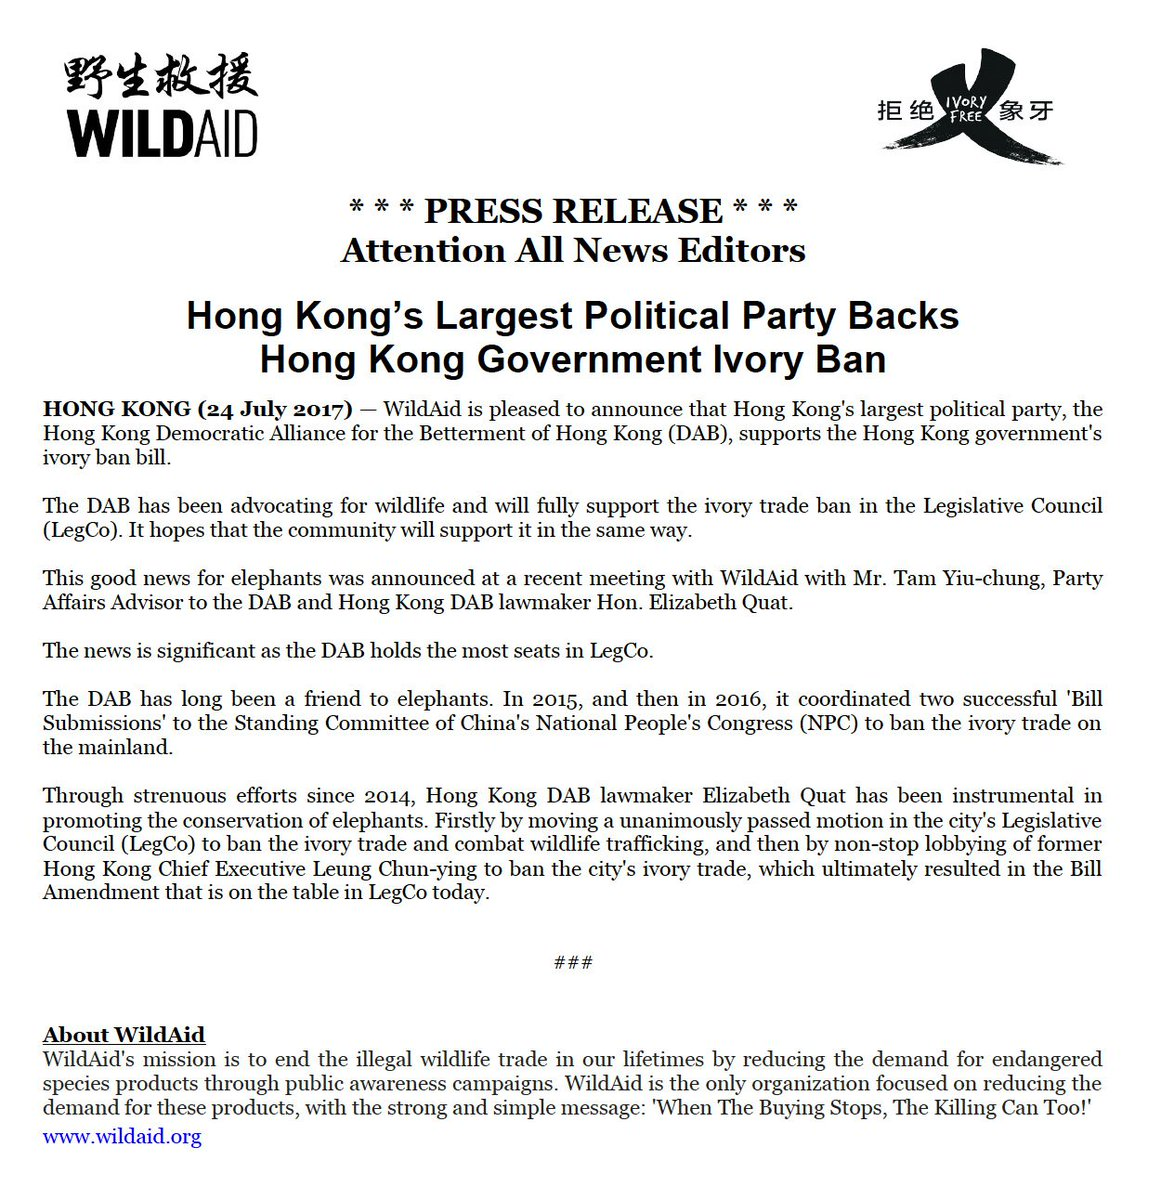 dc8c48f5a http   www.abc.net.au news 2017-04-06 conservationists-cast-doubt-on-chinas- ivory-trade-ban 8399992